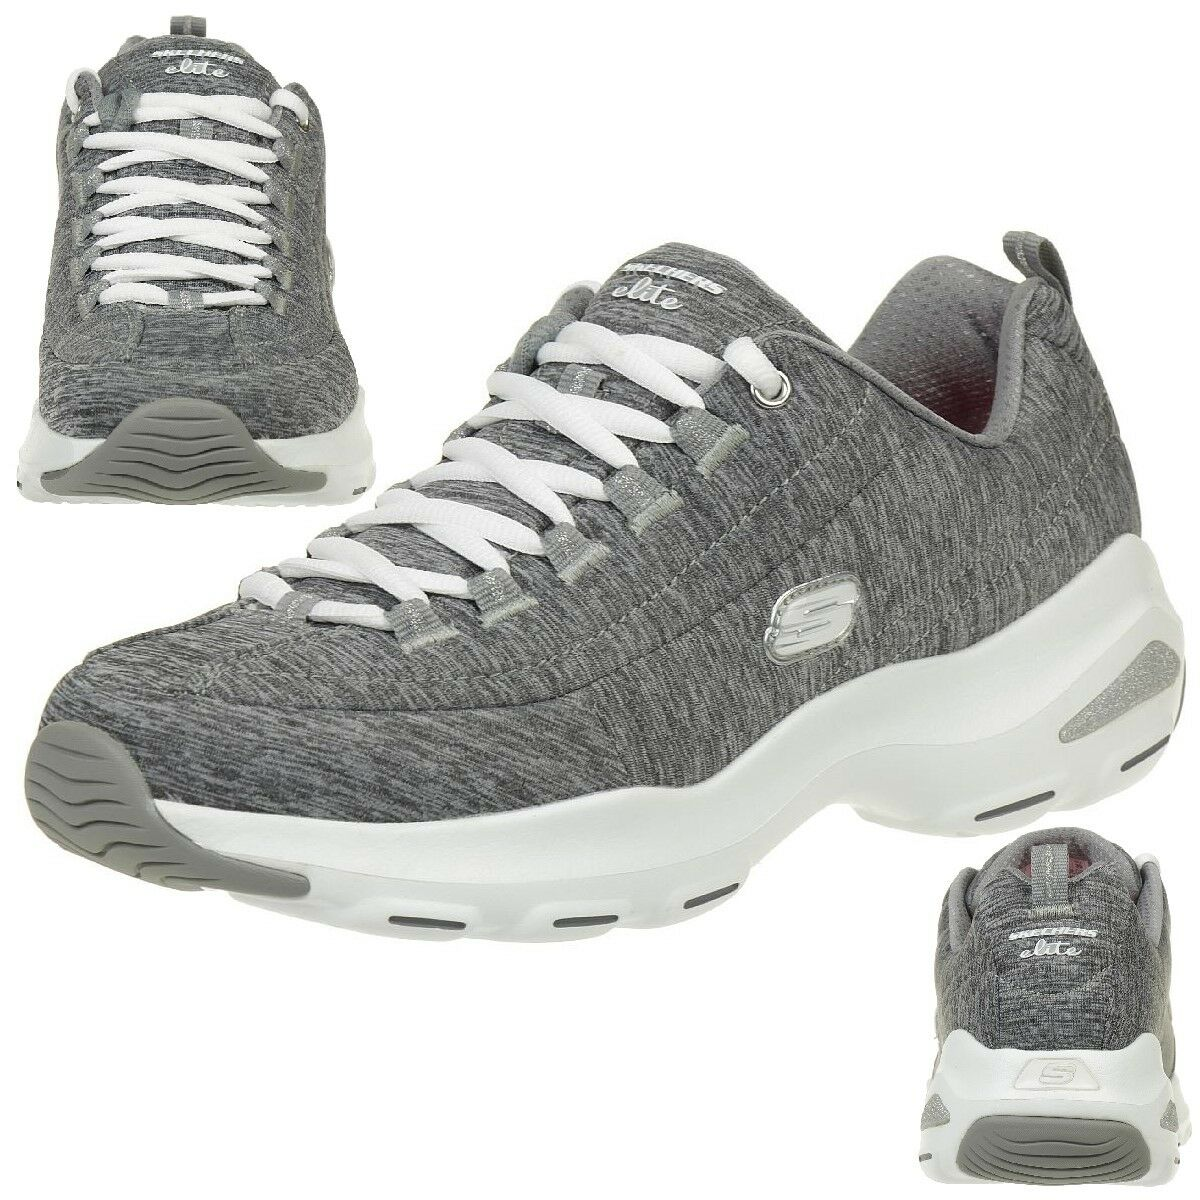 Skechers d d d 'Lite ultra-meditative Zapatos señora air cooled memory foam Gry  lo último